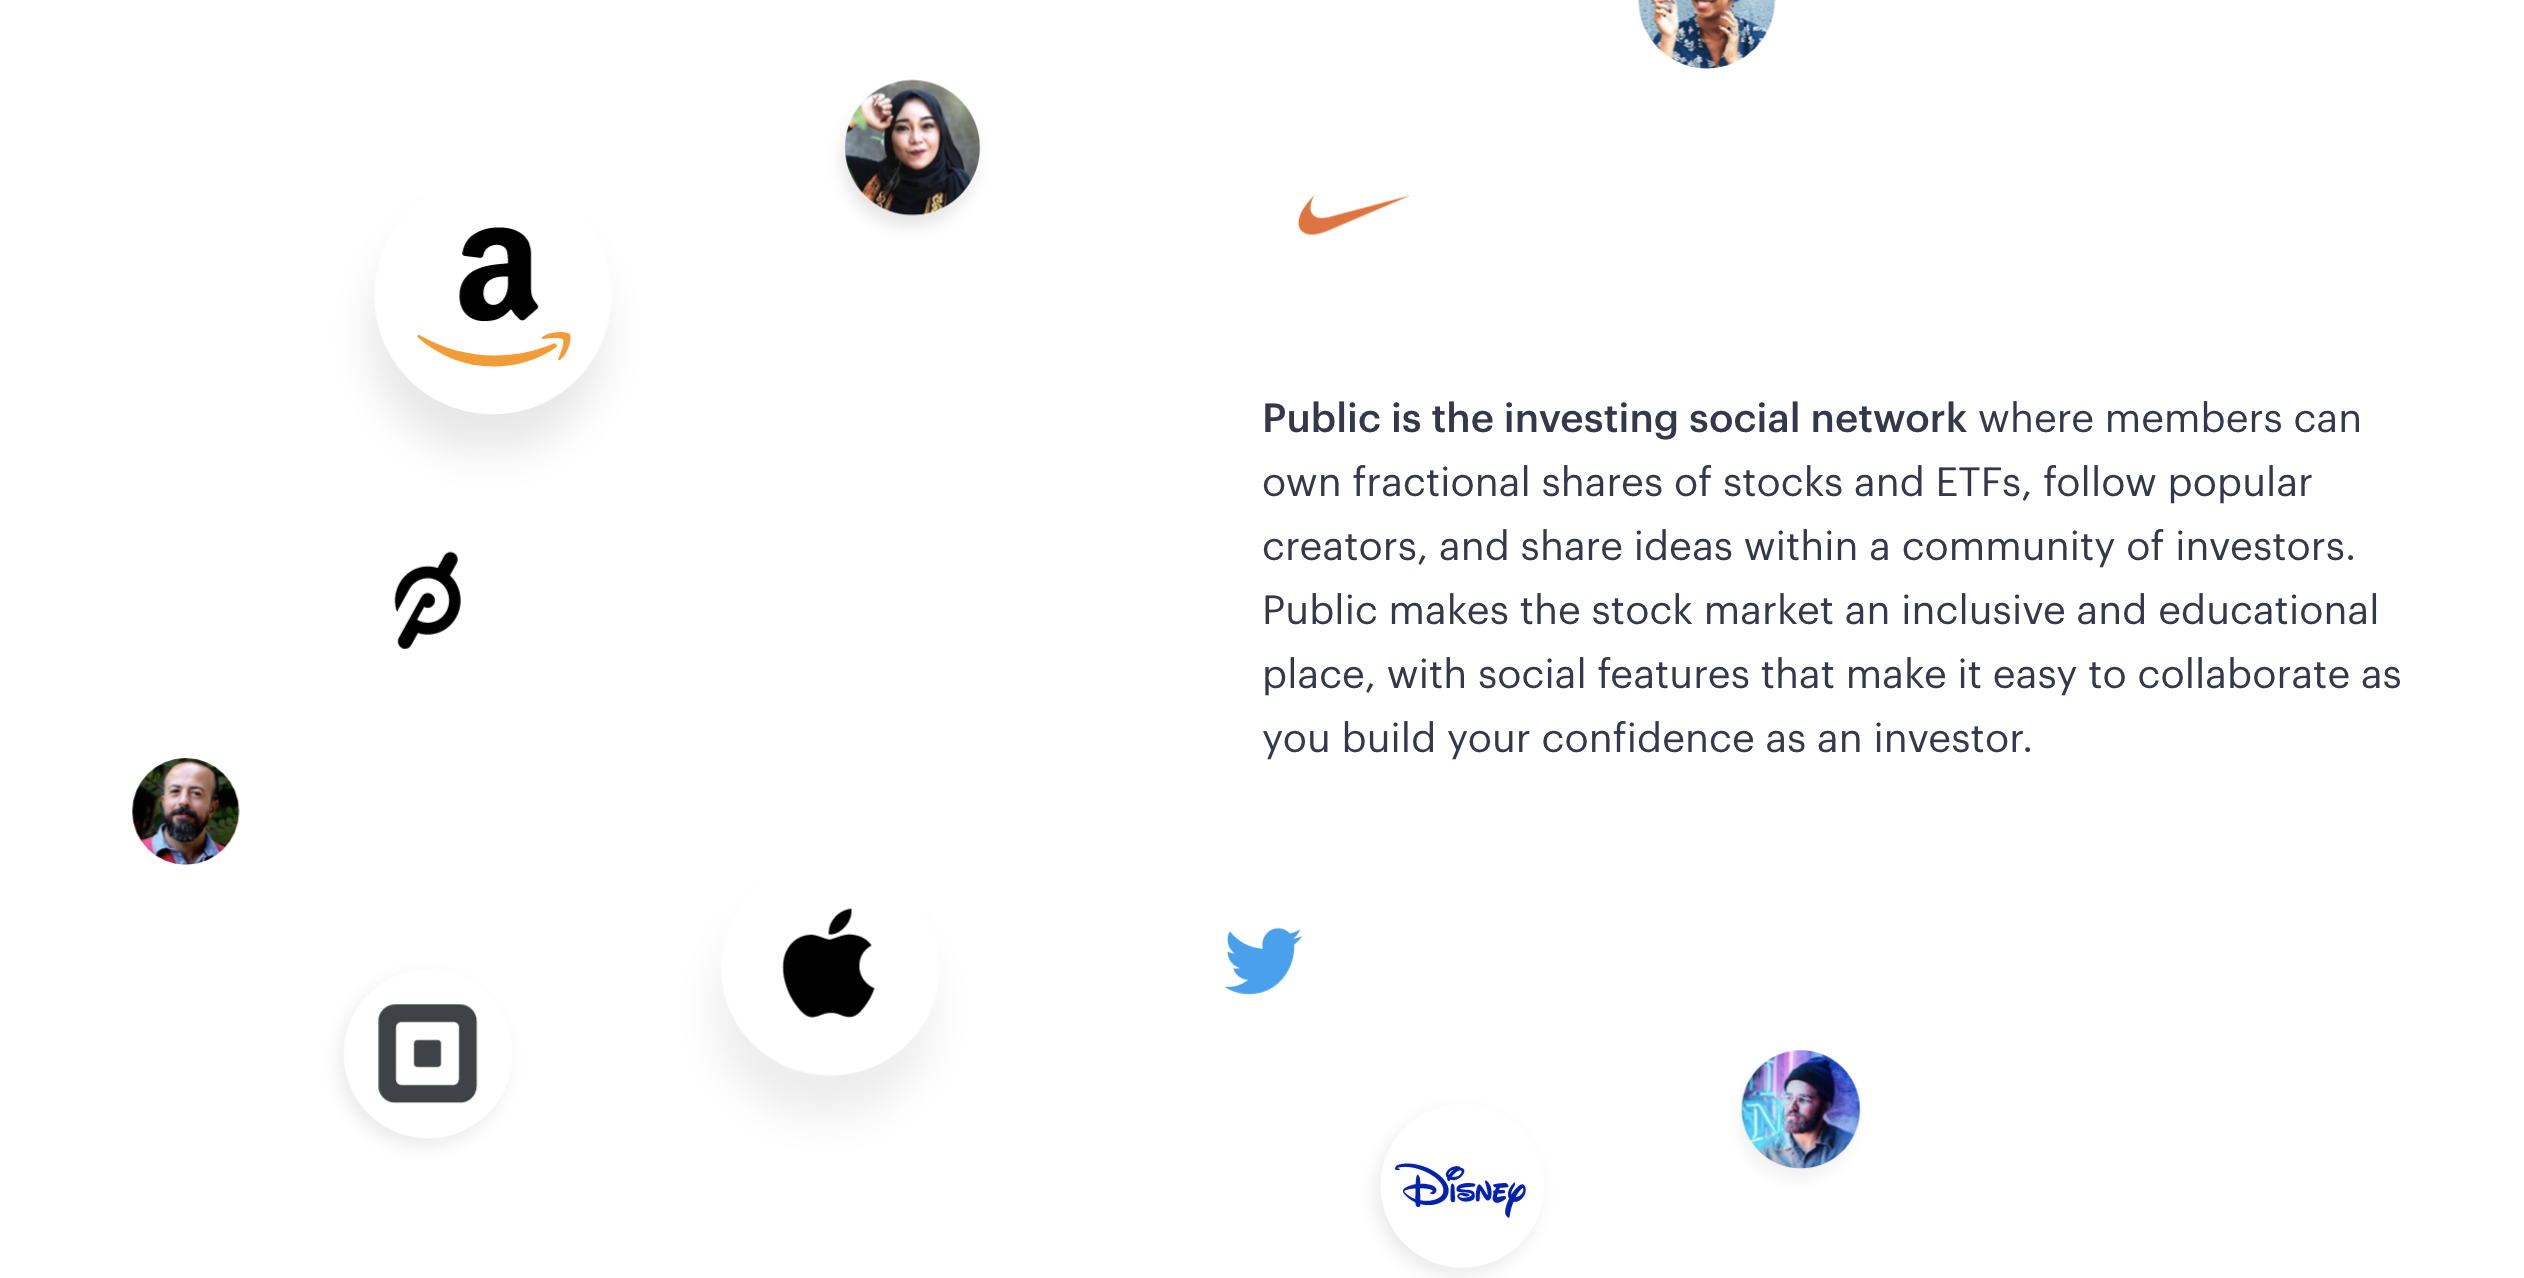 Public strives to make investing available to everyone. Like many other mobile-first apps, Public offers low fees and fractional shares. But their public investor portfolios, comprehensive Learn section, and social features set them apart from other free trade apps. Image from public.com.